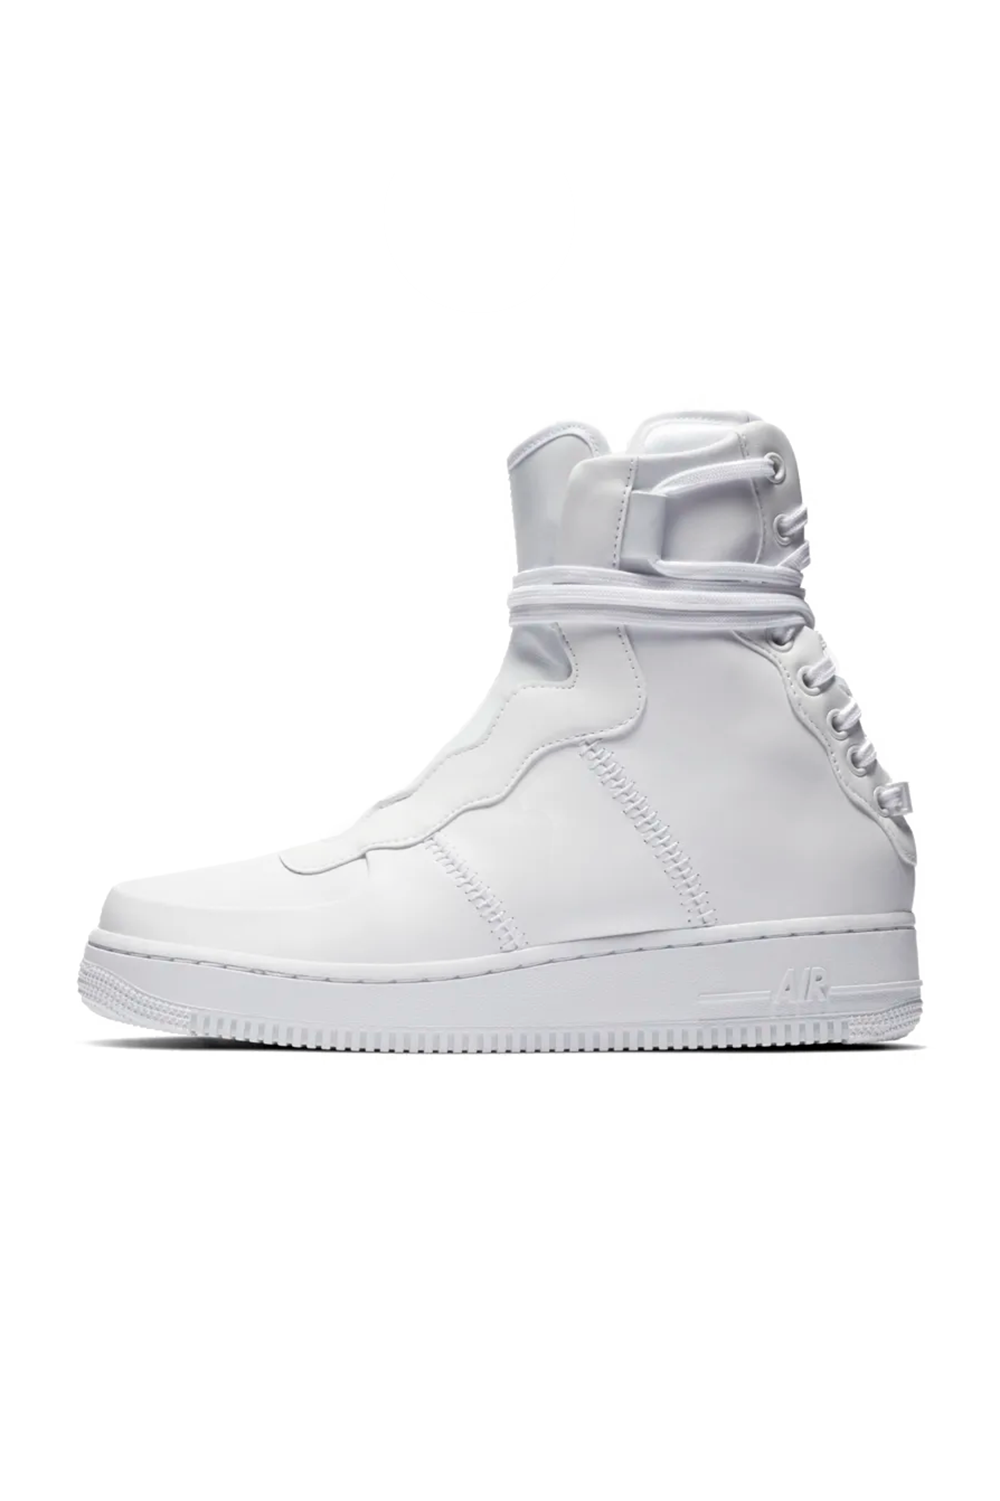 Shoe Nike AF1 Rebel XX Nike nike.com $140.00 SHOP IT This high-top sneaker has a major plot twist: the laces are on the back instead of the front. That alone is enough to make me do a double-take on these.